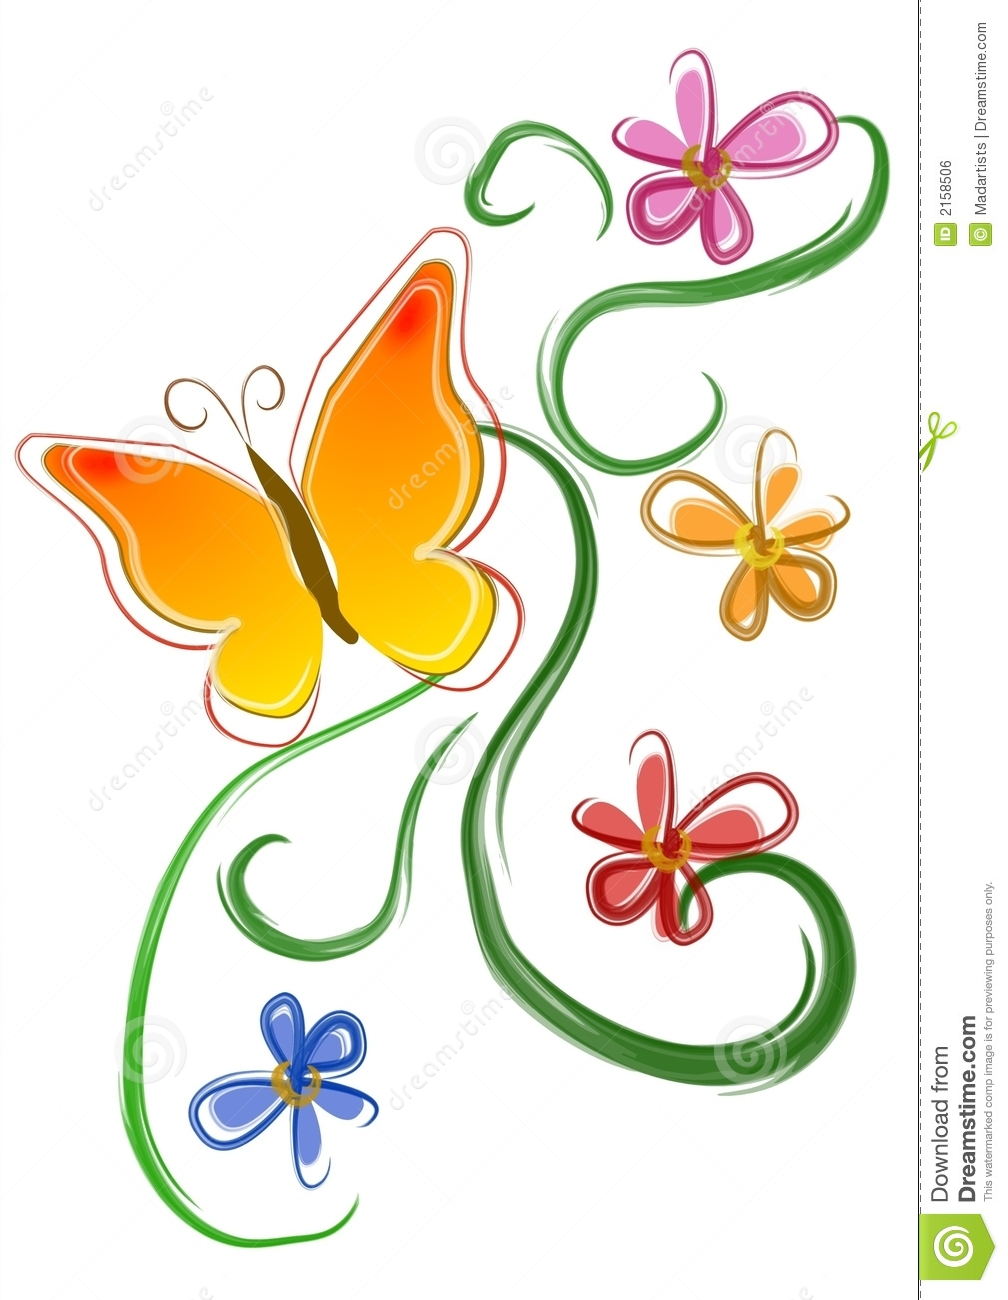 Butterfly flower clipart 8 » Clipart Station.